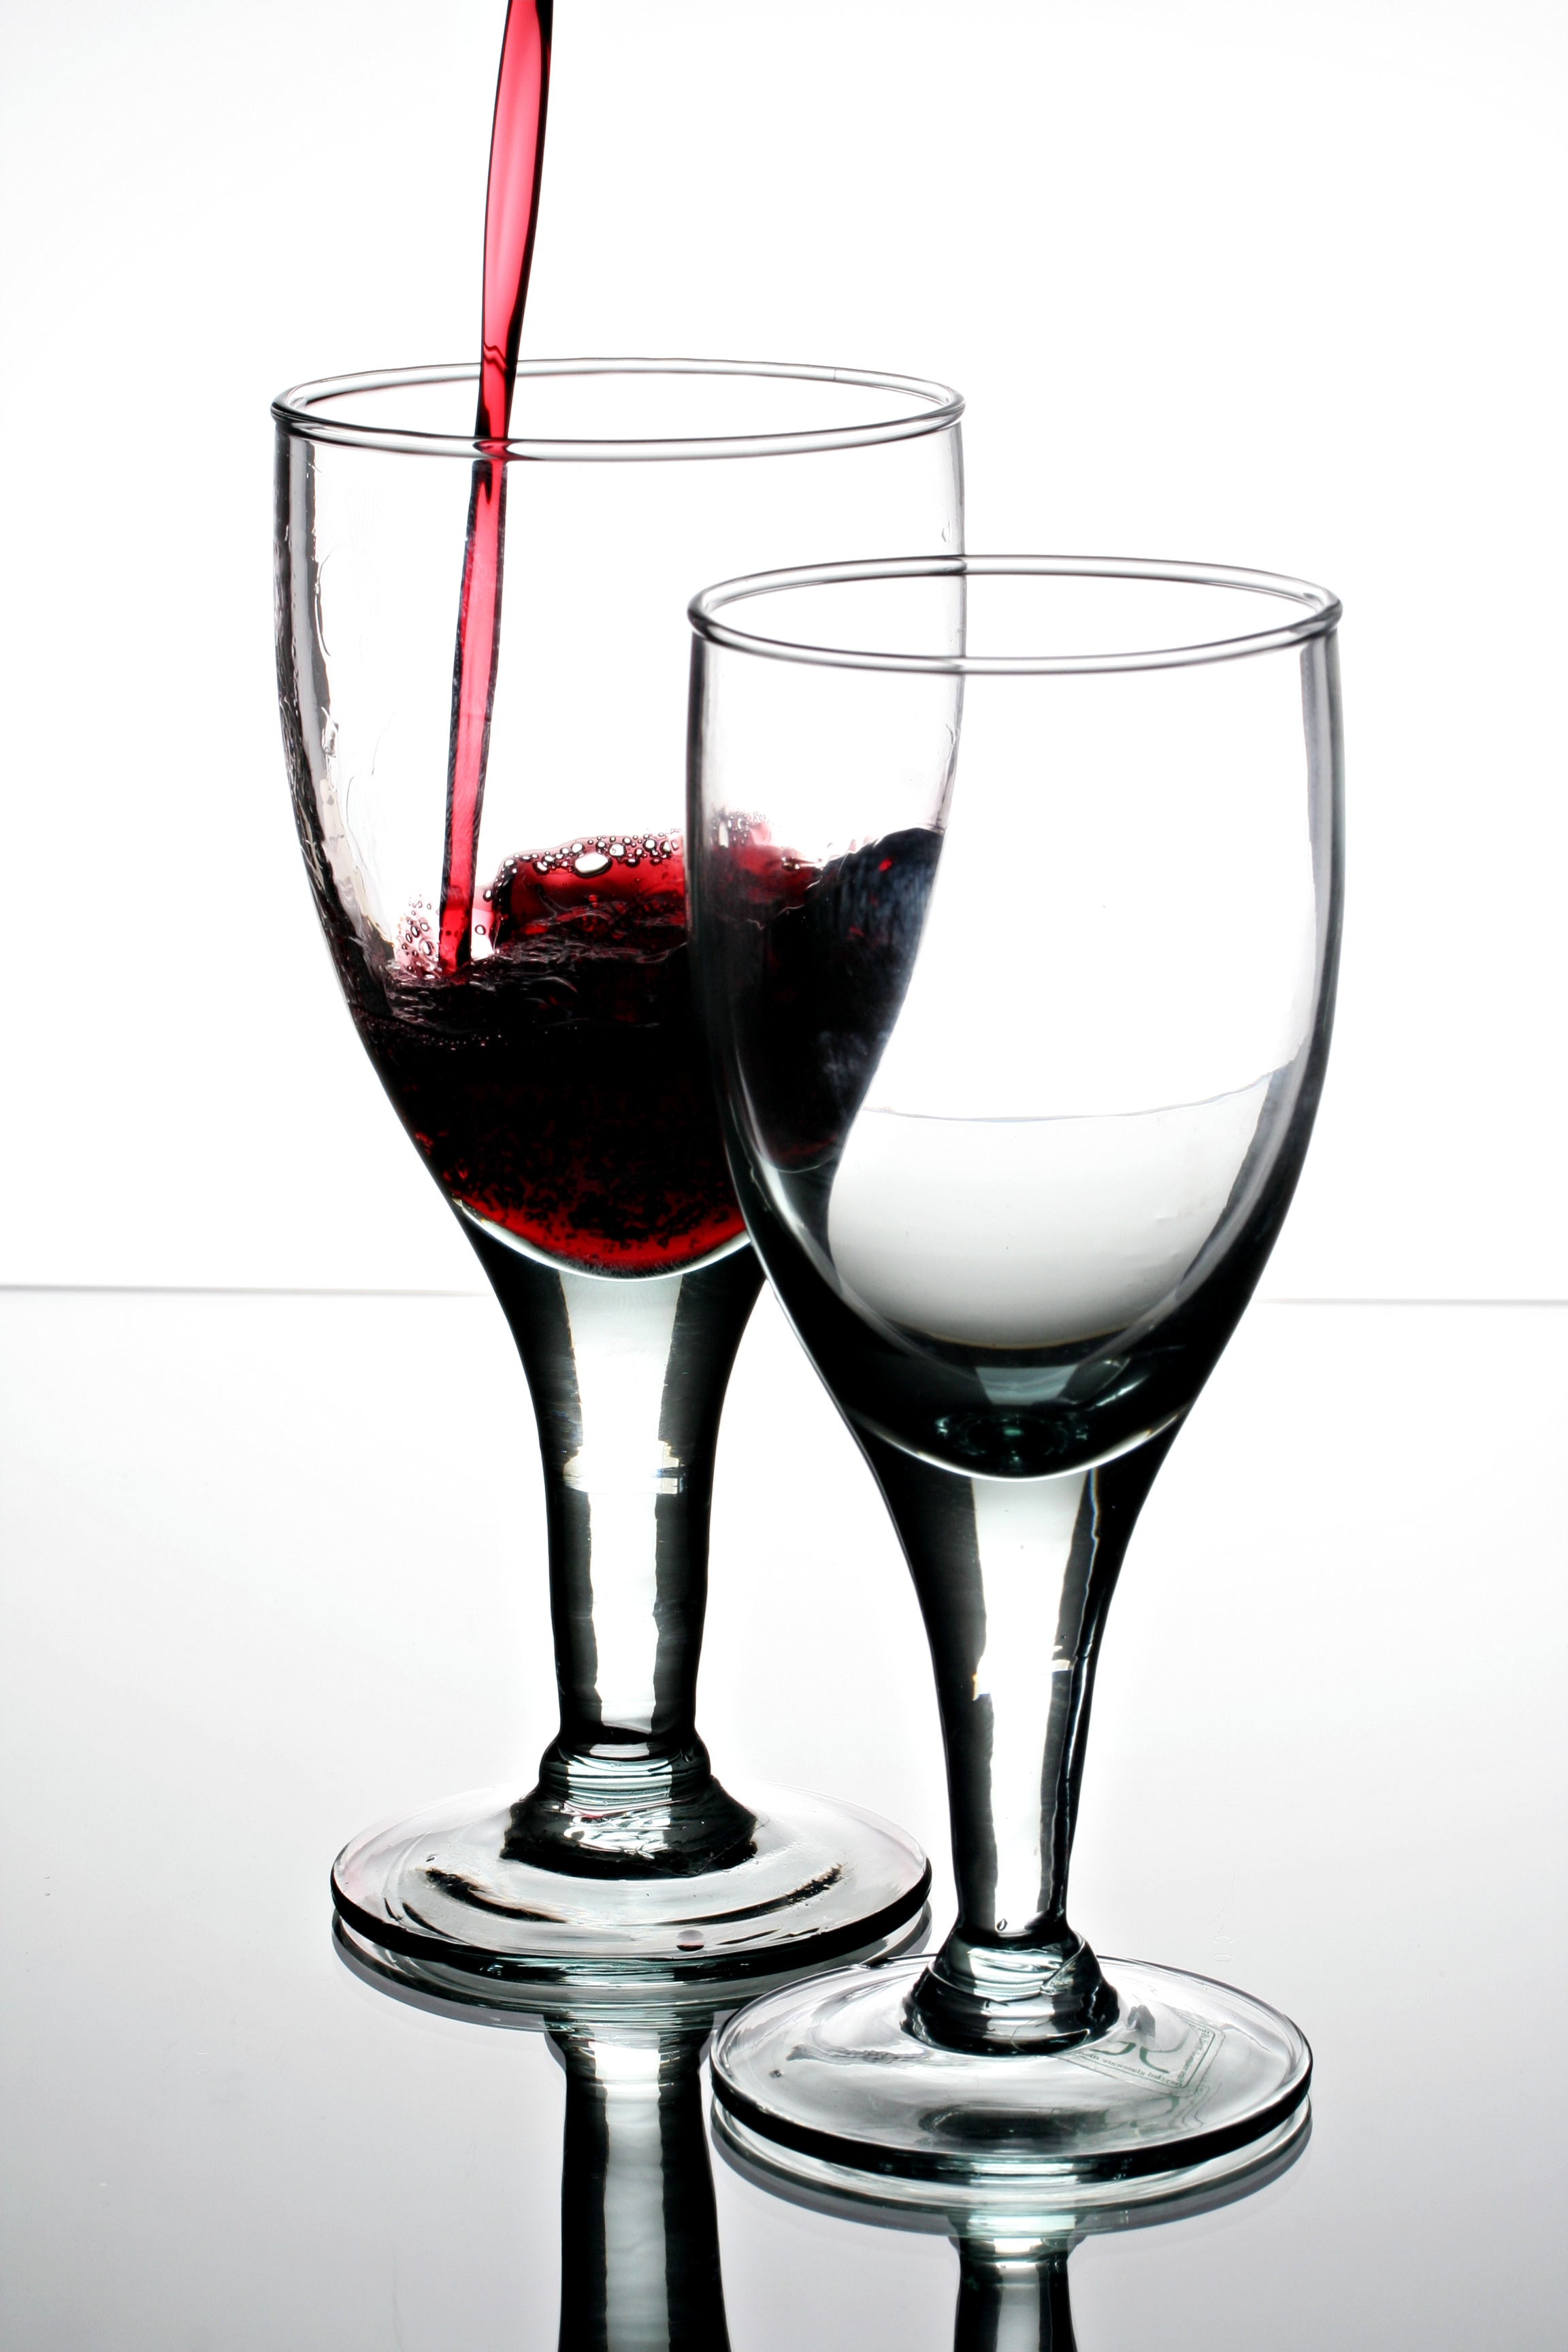 Http Commons Wikimedia Org Wiki File Pouring Red Wine Into A Glass Jpg